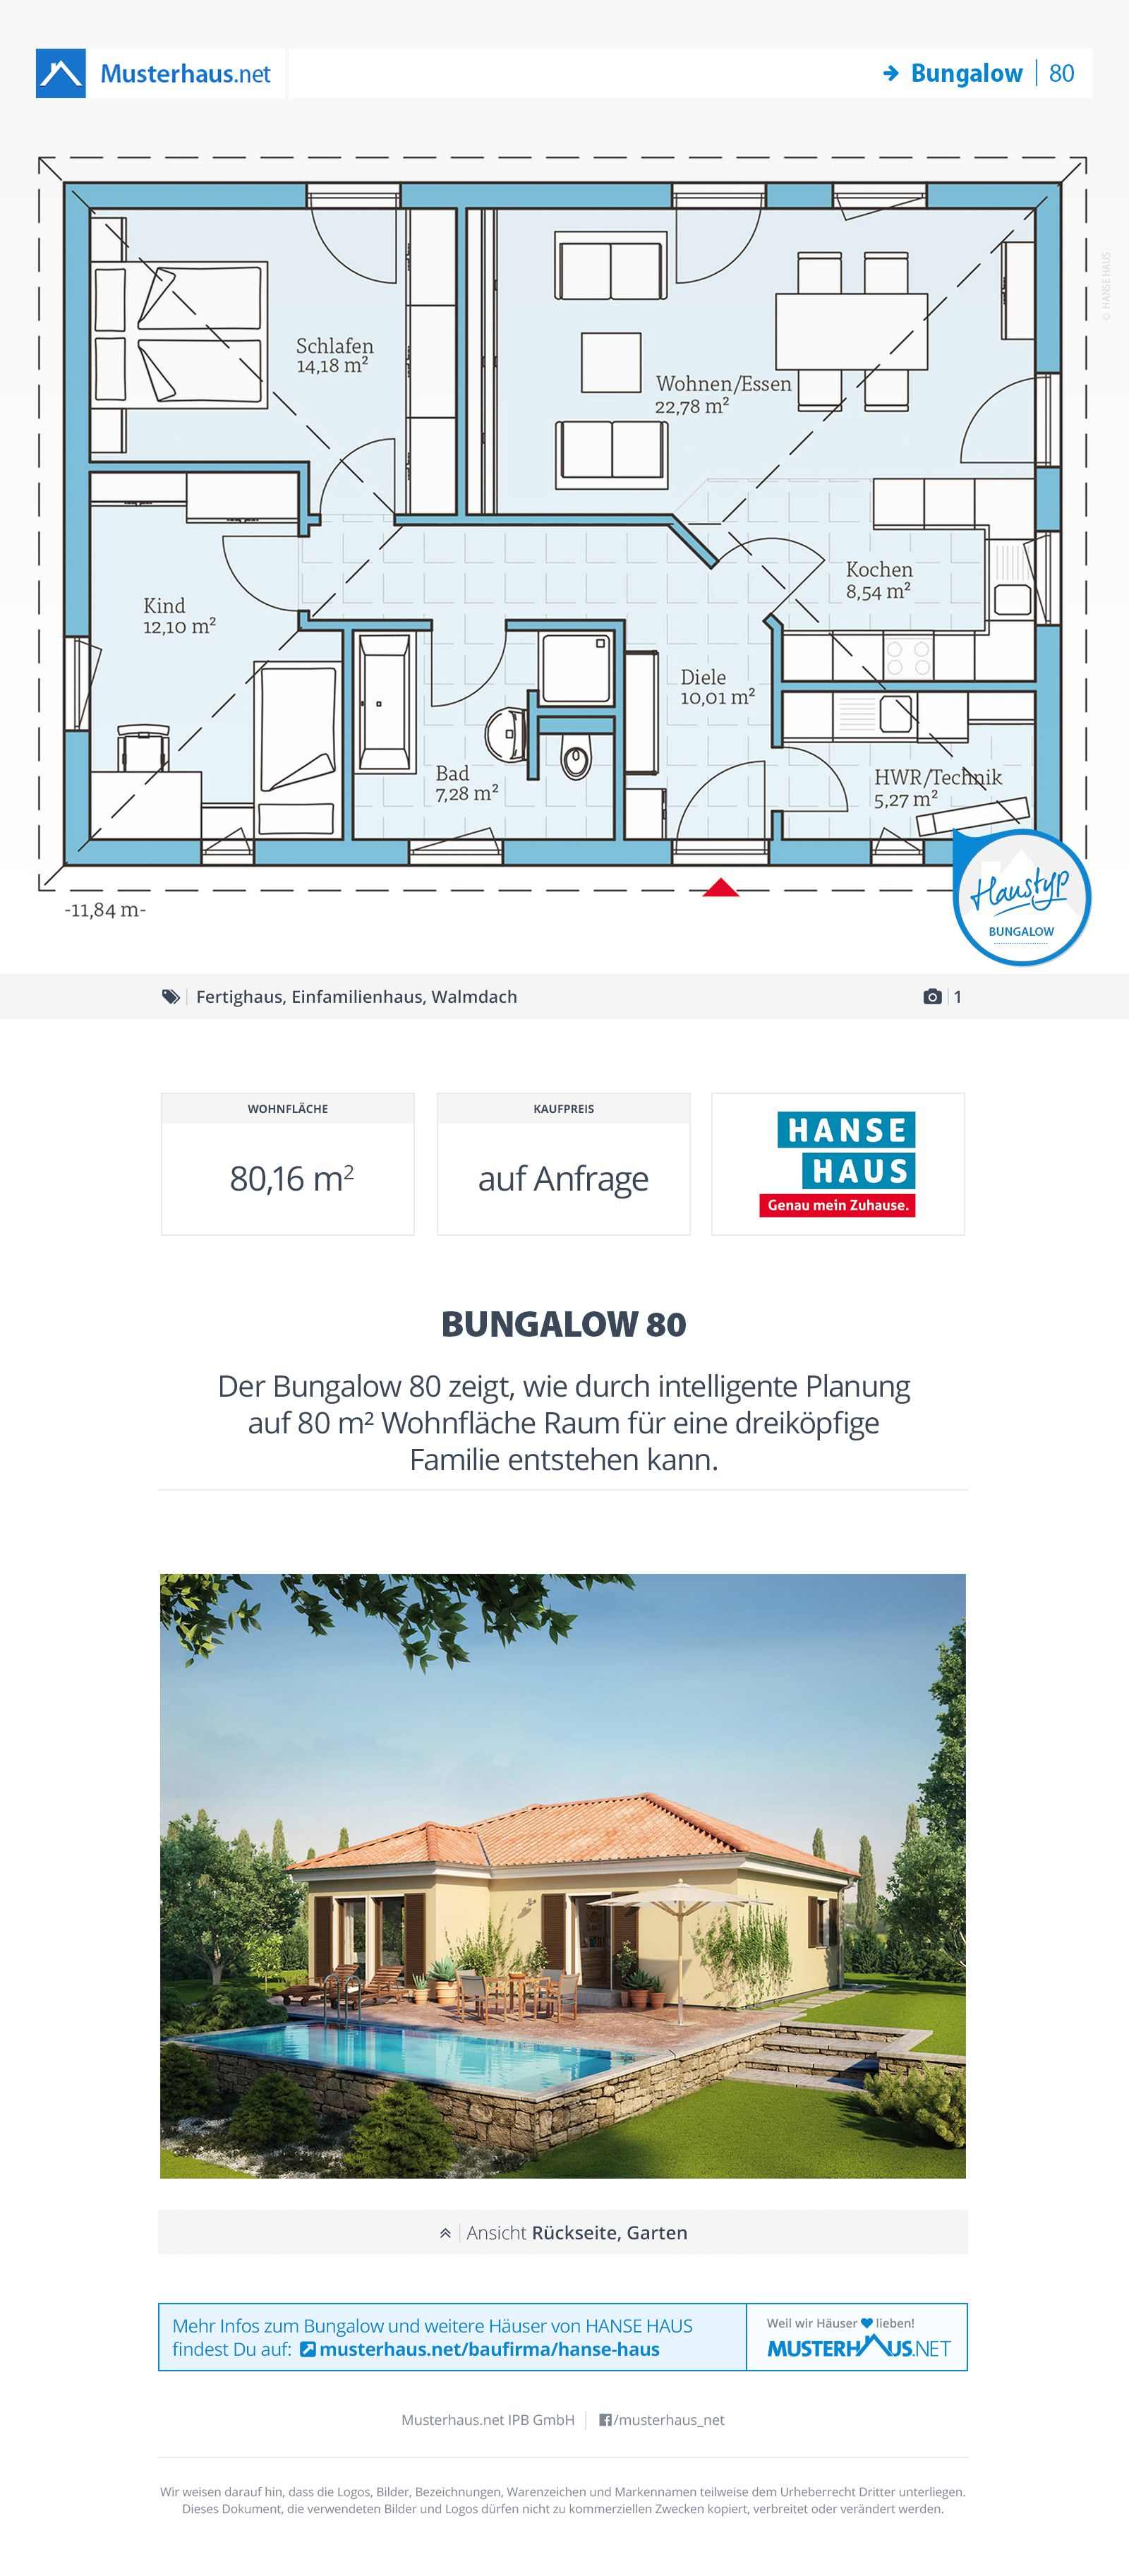 Grundrisse Offene Küche Bungalow 80 In 2019 Houses Bungalow House Design Und House Plans